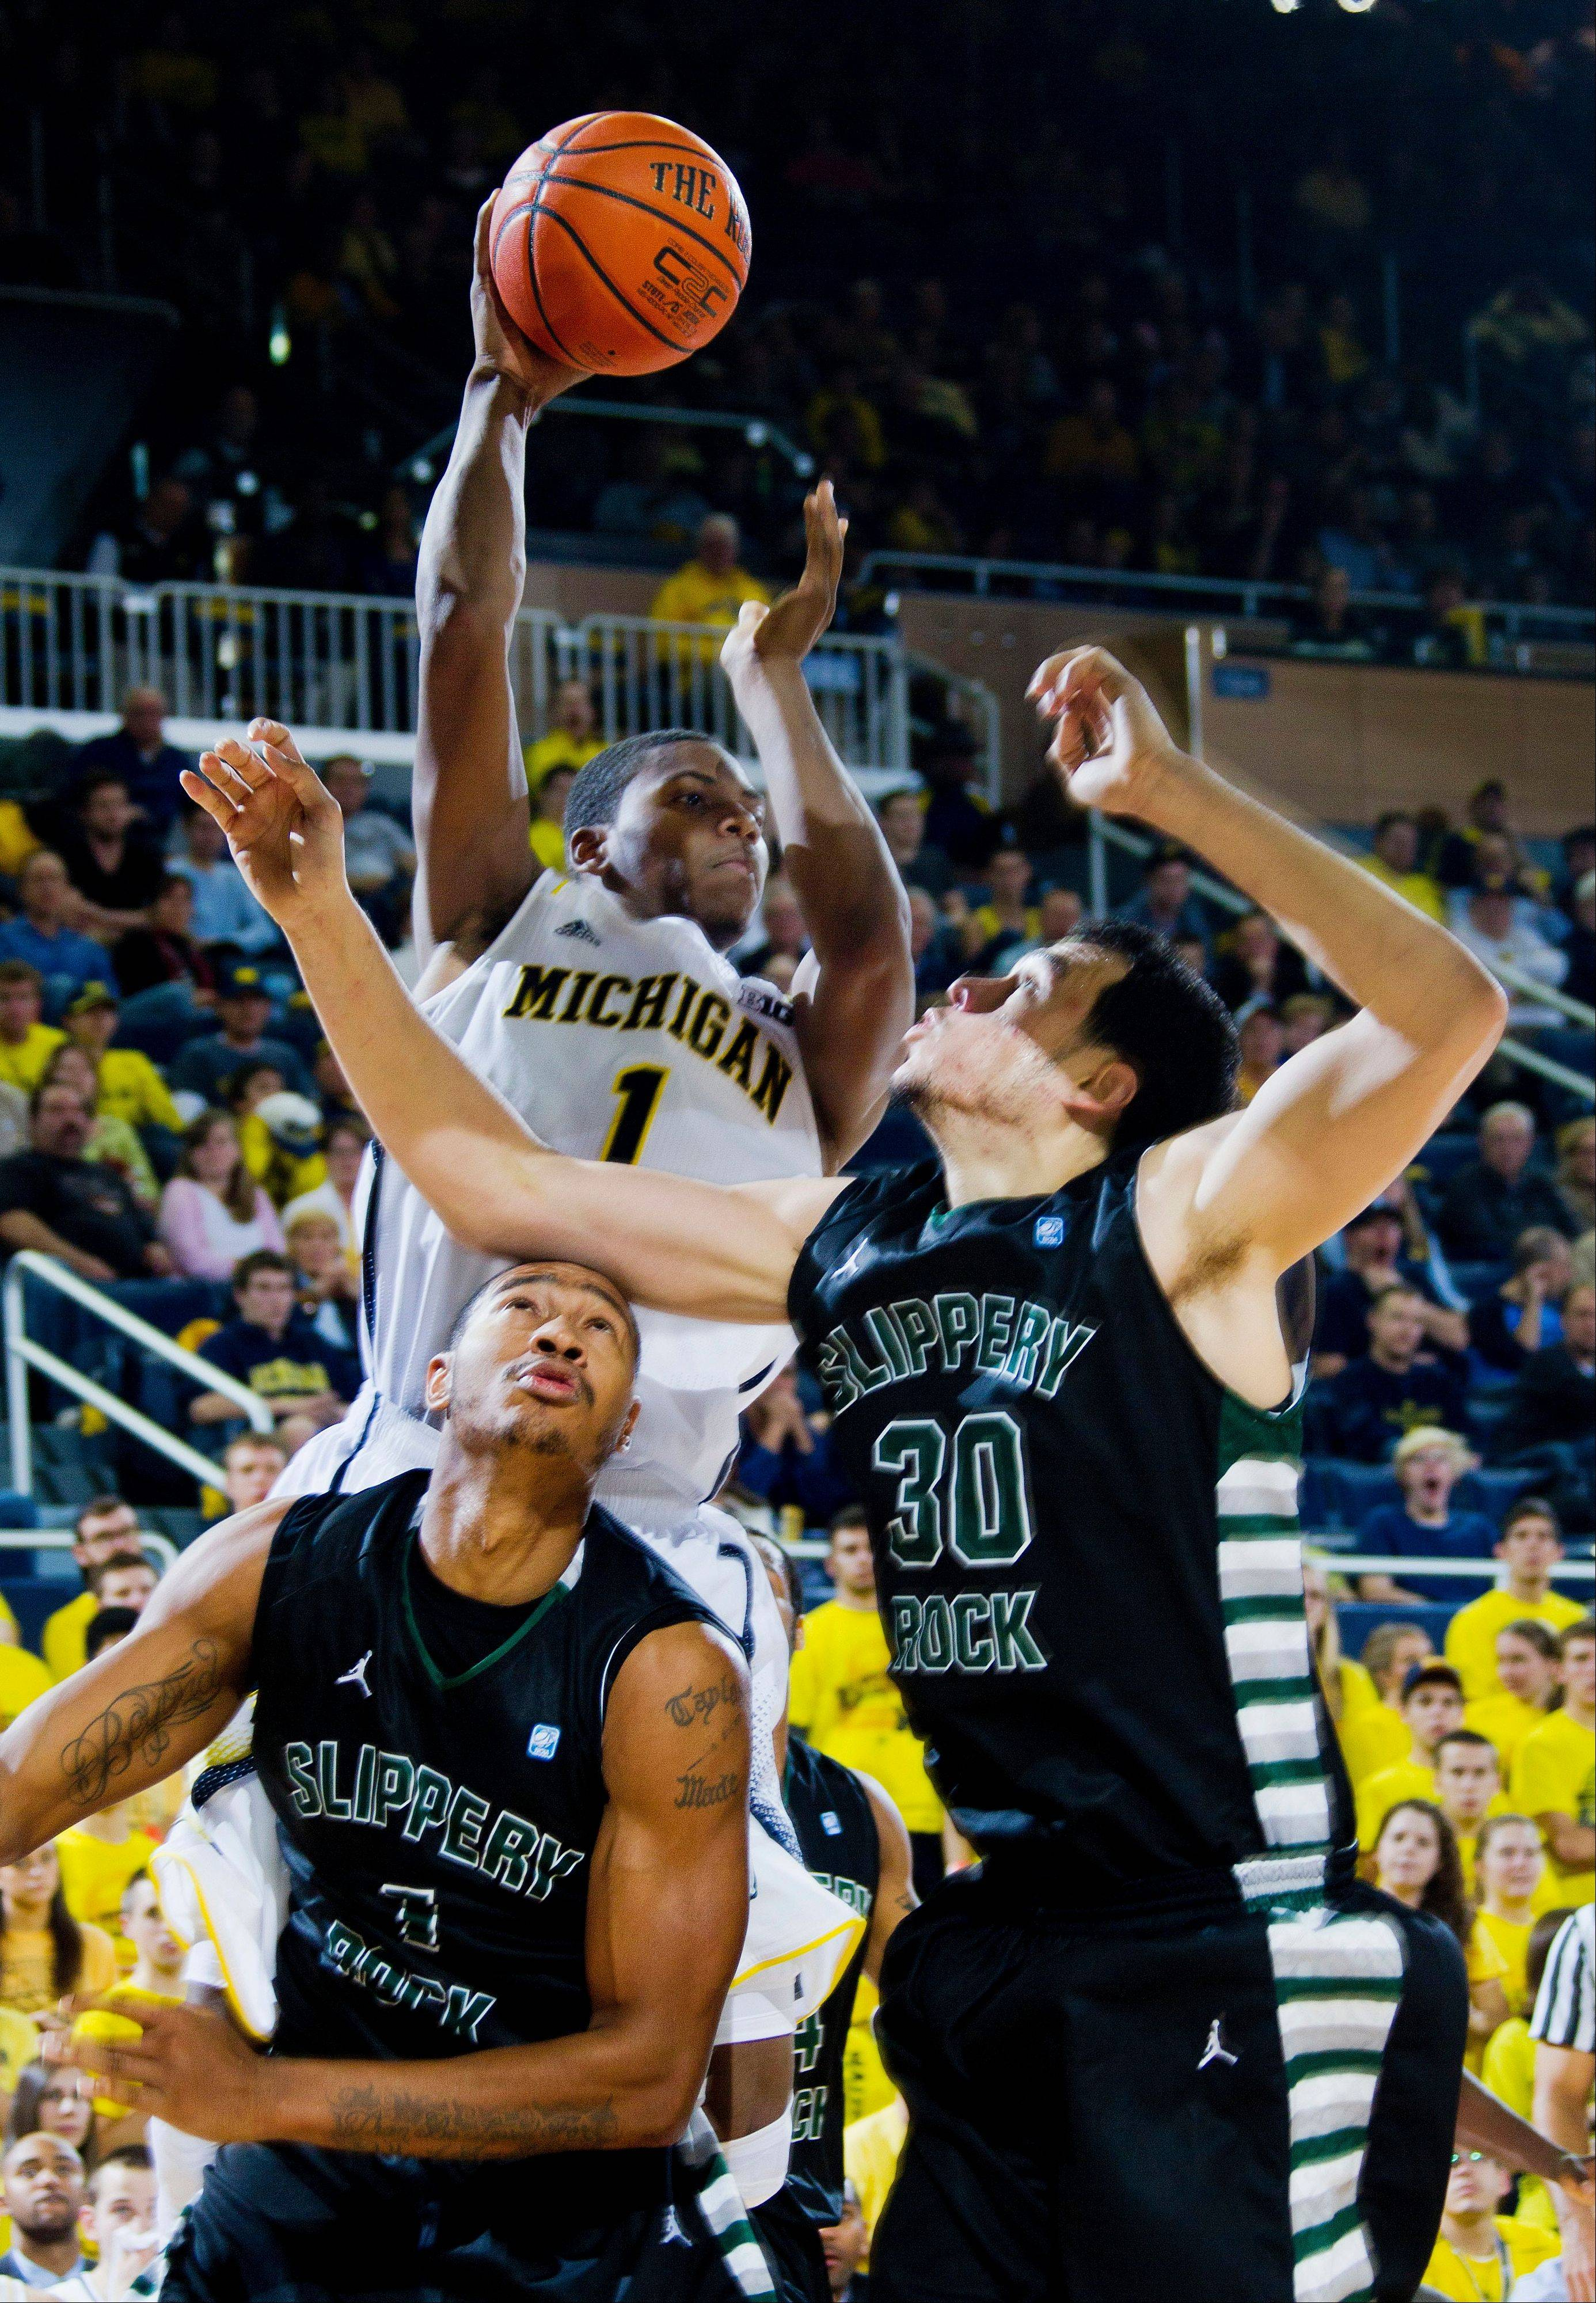 Michigan forward Glenn Robinson III, top, jumps for the ball over Slippery Rock forward Devin Taylor, bottom left, and center Luiz Santos (30) Friday during the second half at Crisler Center in Ann Arbor, Mich.